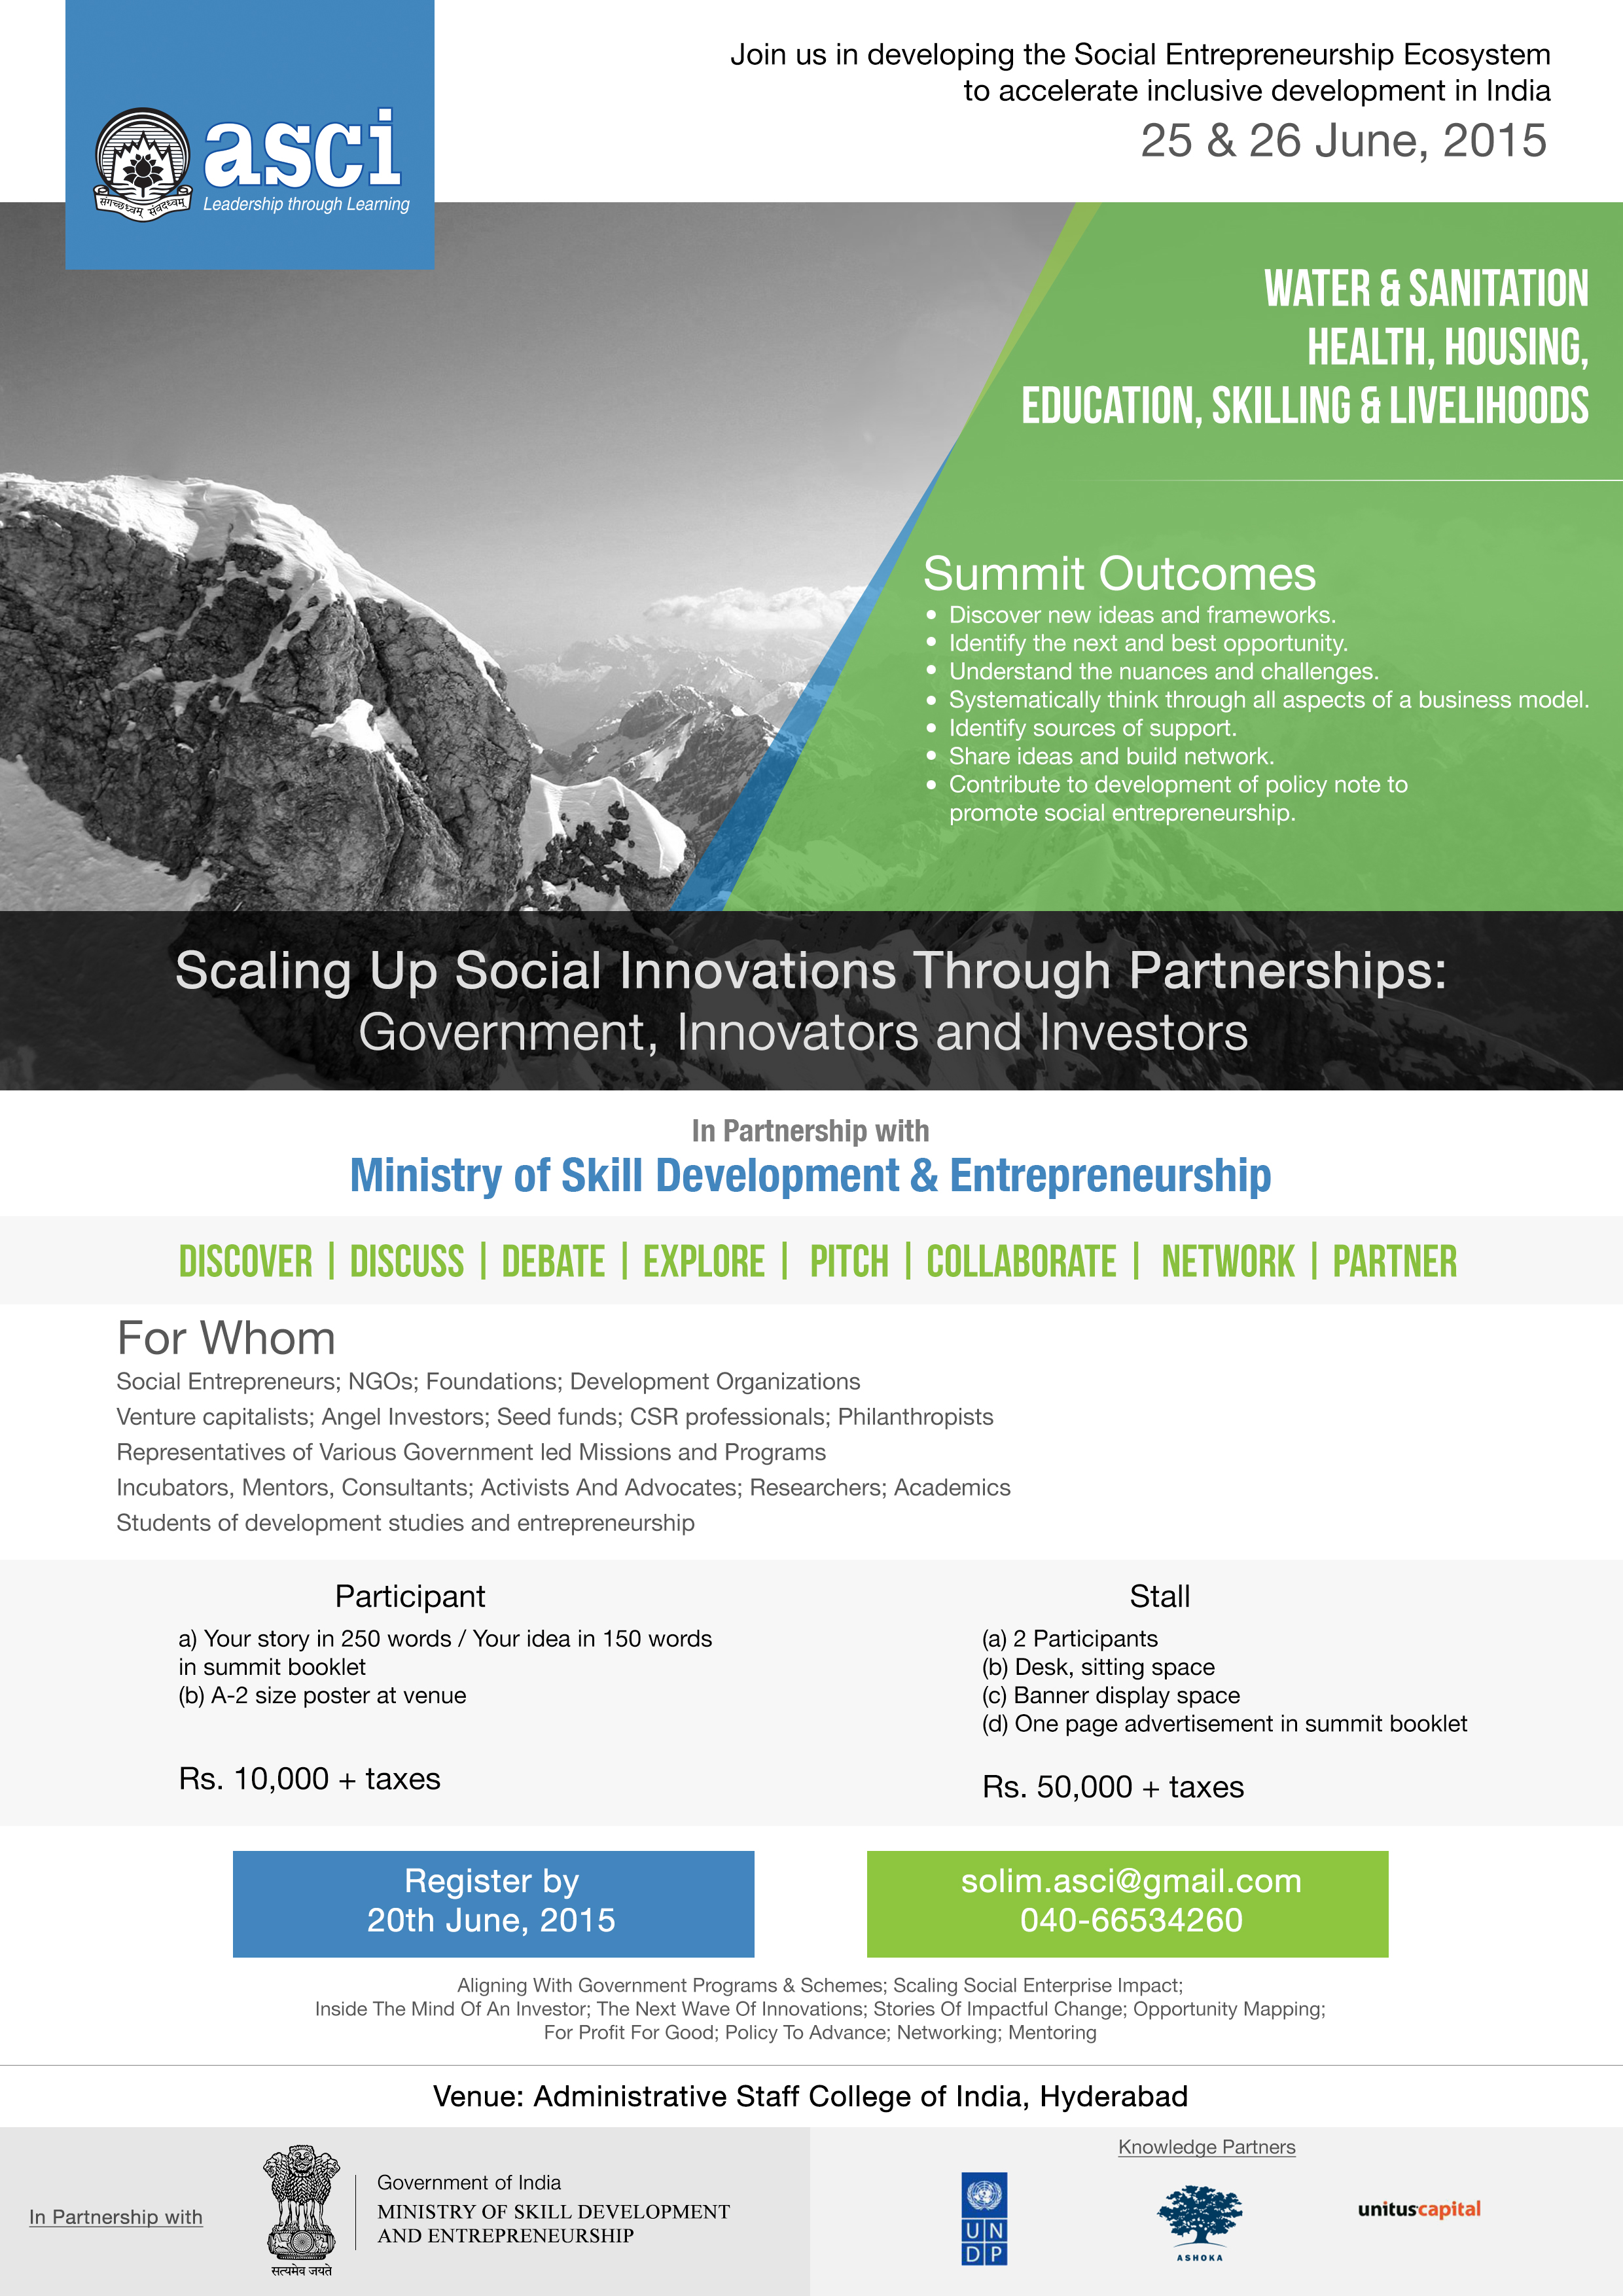 The Summit for IT Firms and Entrepreneurs - insight and